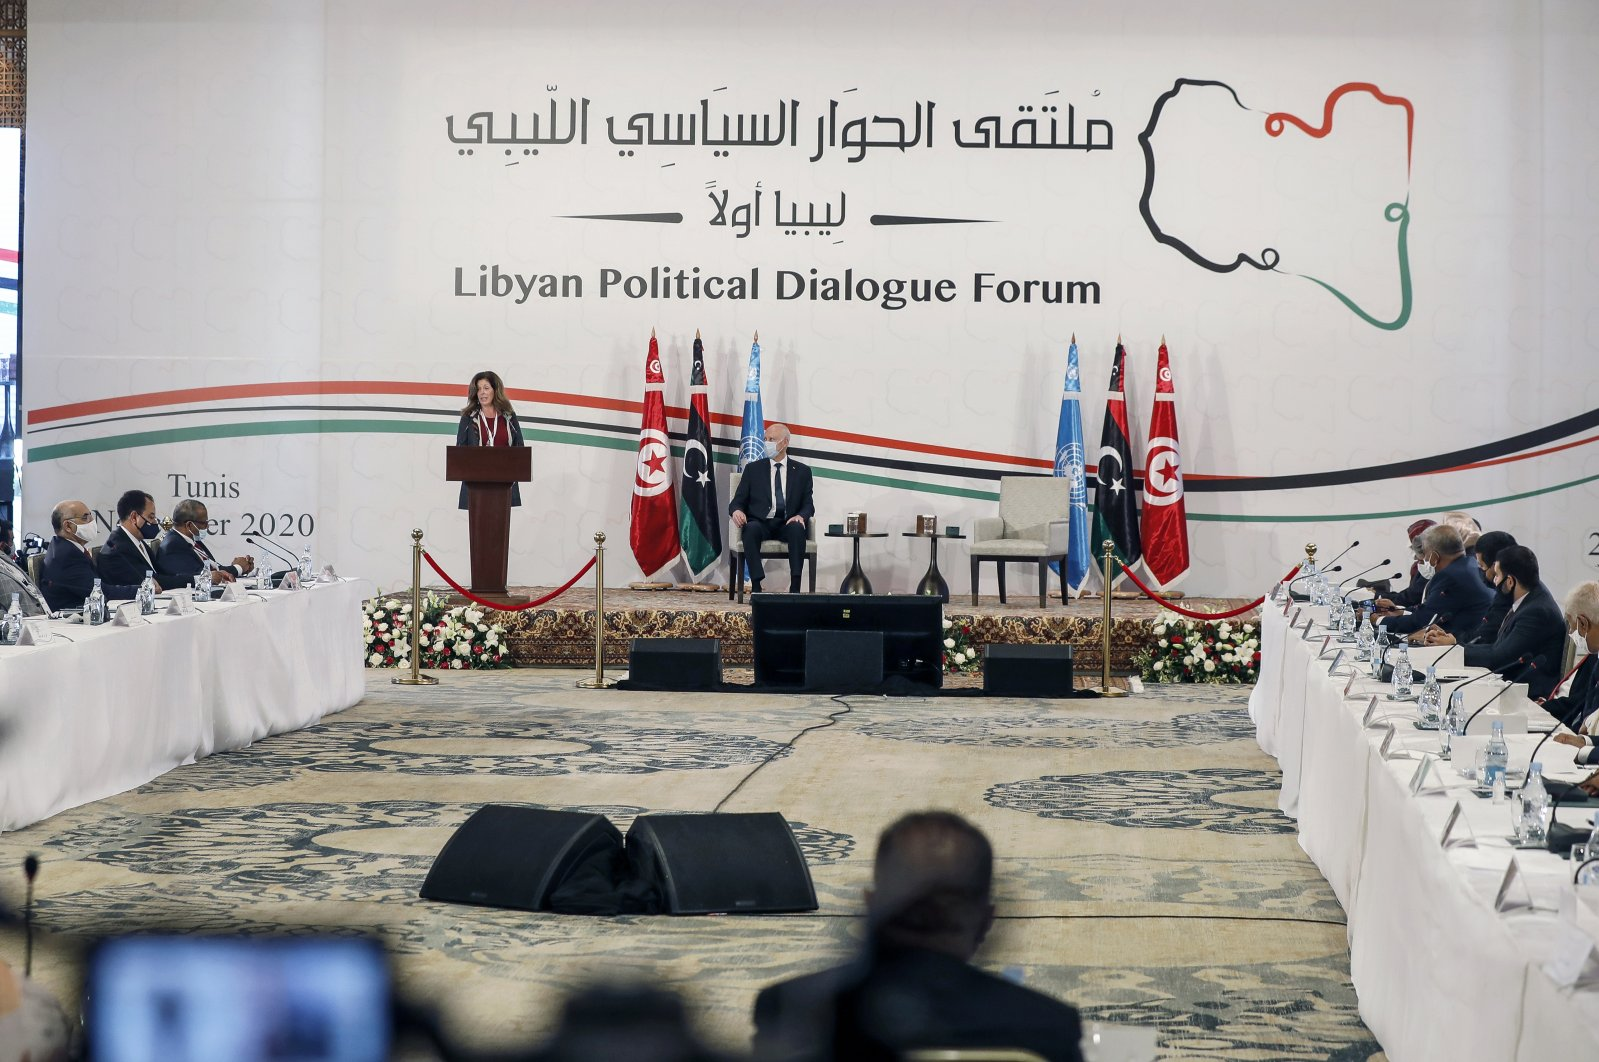 Stephanie Williams (L), the acting special representative of the secretary-general and head of the United Nations Support Mission, and Tunisian President Kais Saied attend the opening ceremony of Libya's peace talks in Tunis, Tunisia, Nov. 9, 2020. (AP Photo)